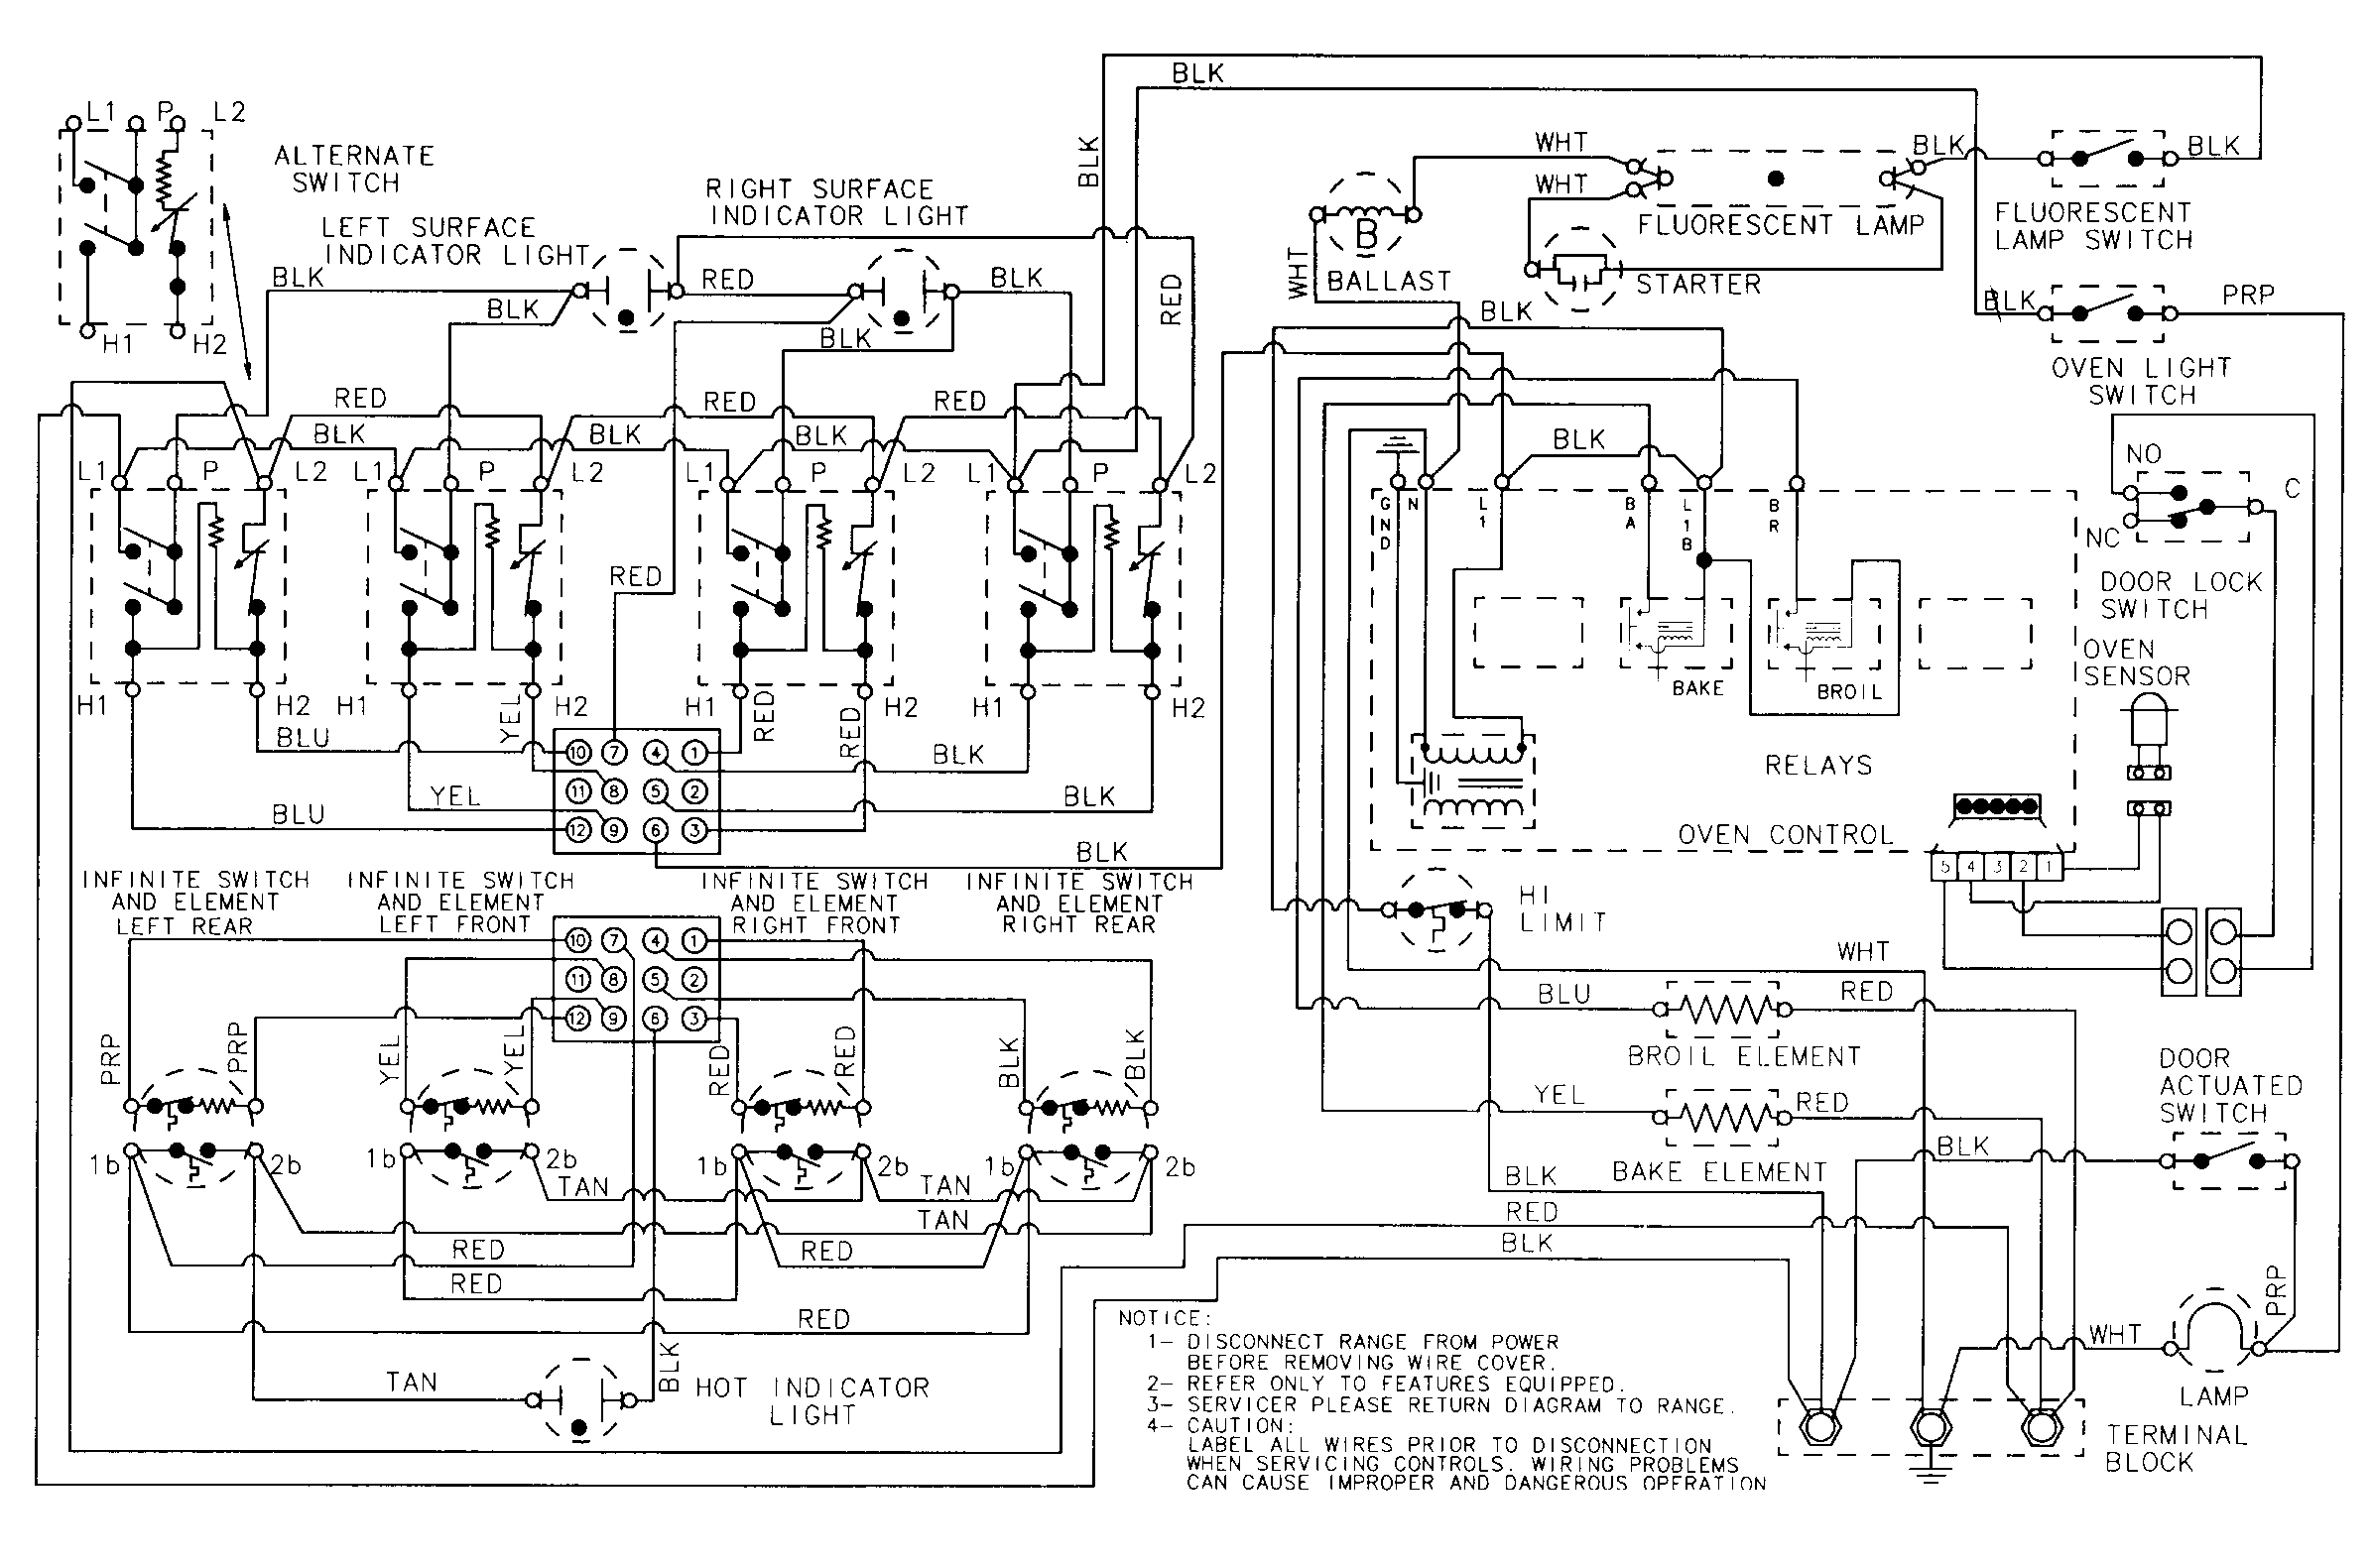 maytag oven wiring diagram today diagram data schema Maytag Neptune Wiring-Diagram maytag microwave oven wiring diagram basic electronics wiring diagram maytag oven wiring diagram